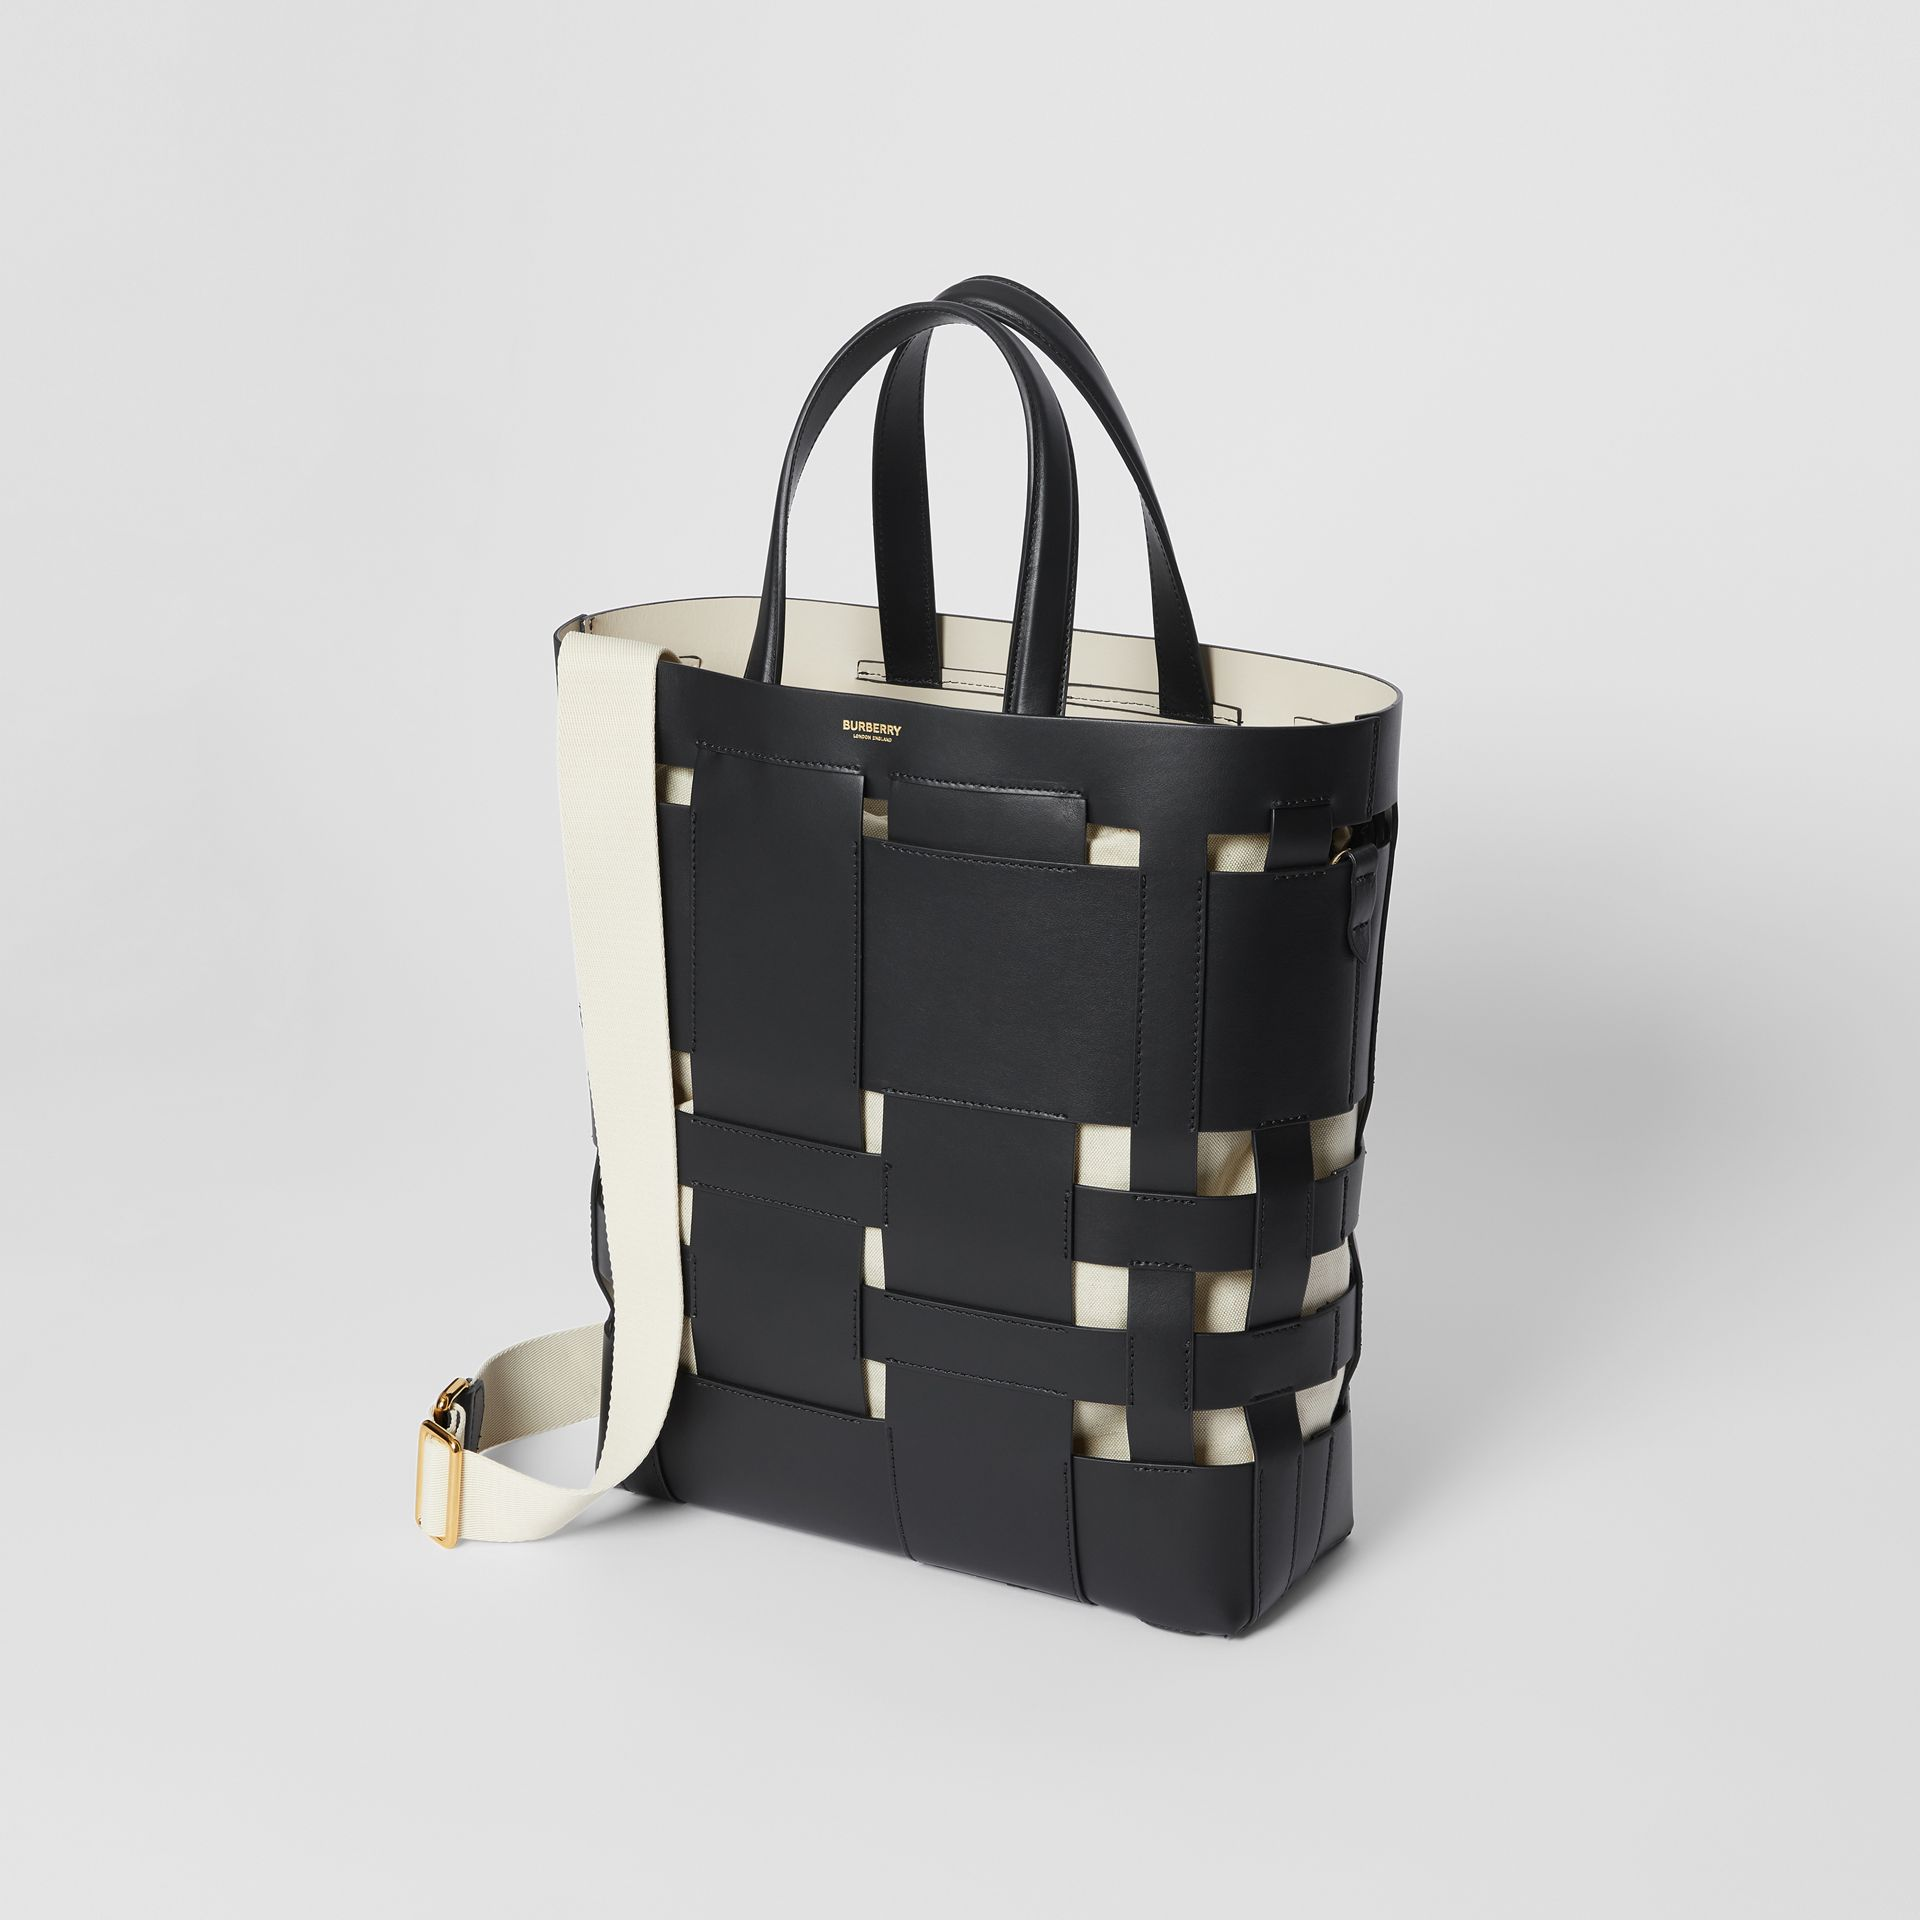 Medium Leather Foster Tote in Black - Women | Burberry Canada - gallery image 2